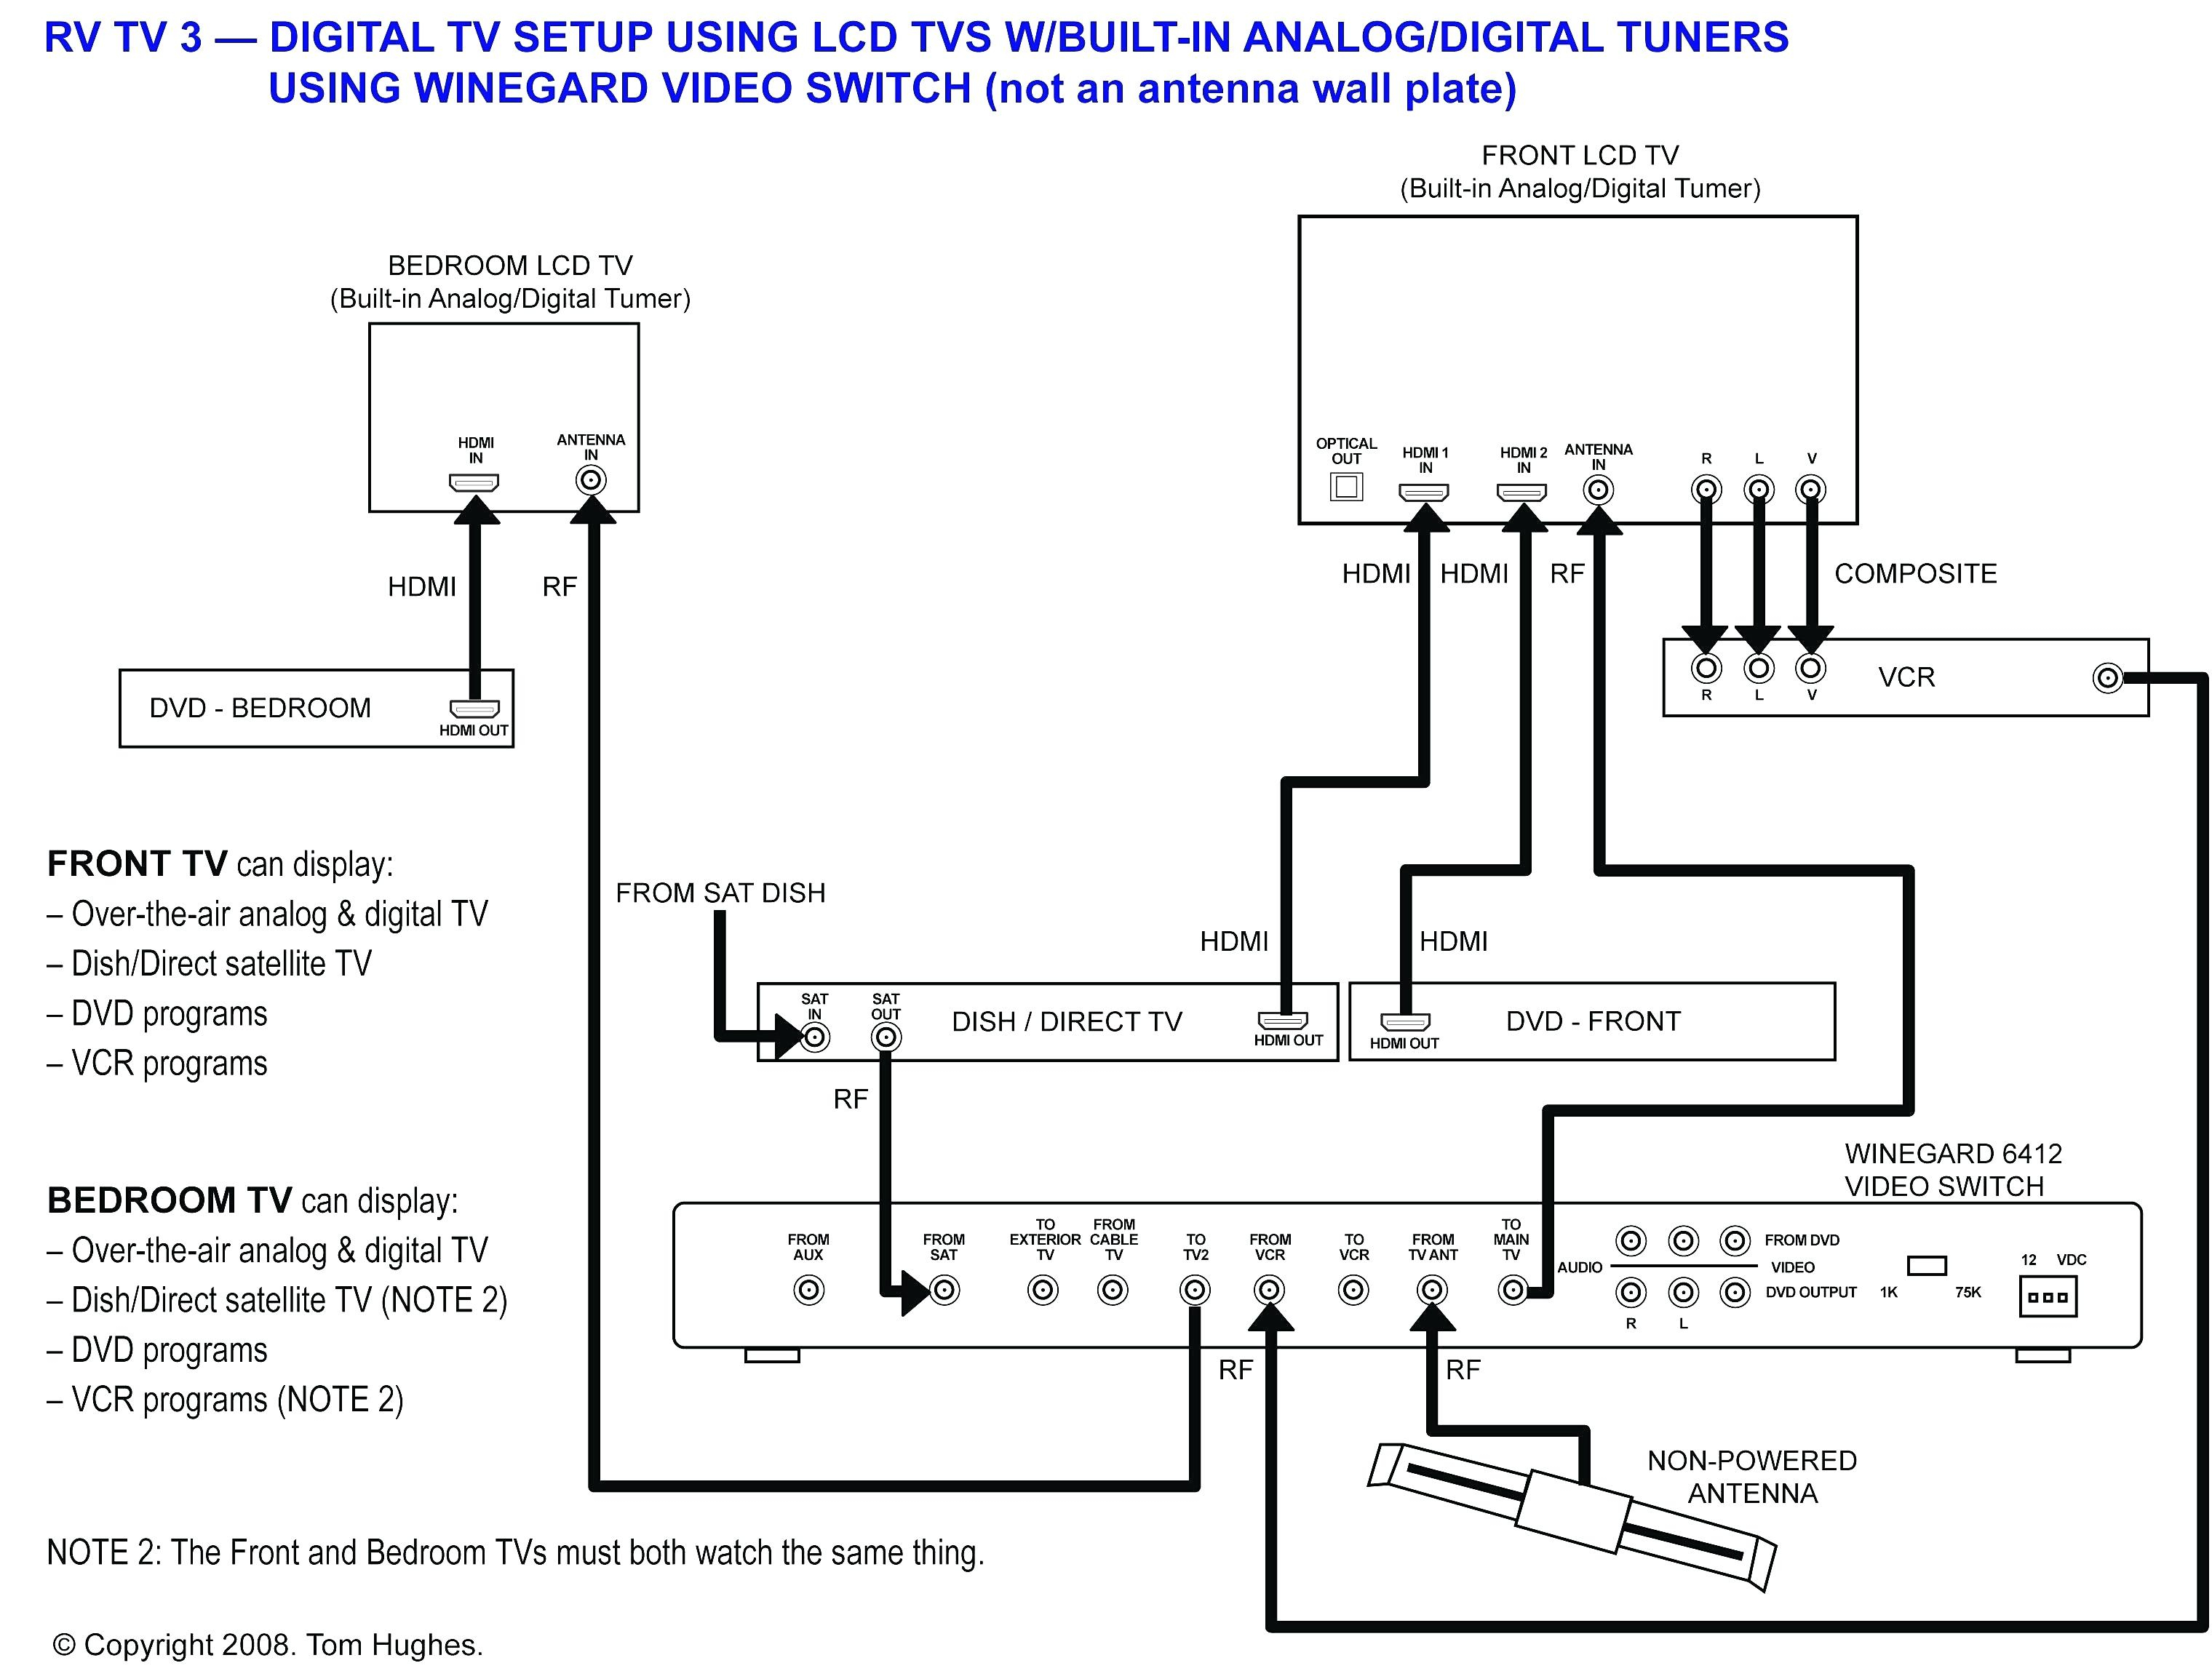 Forest River Rv Wiring Diagram - Wiring Diagrams Thumbs - Wiring Diagram For Travel Trailer 120V